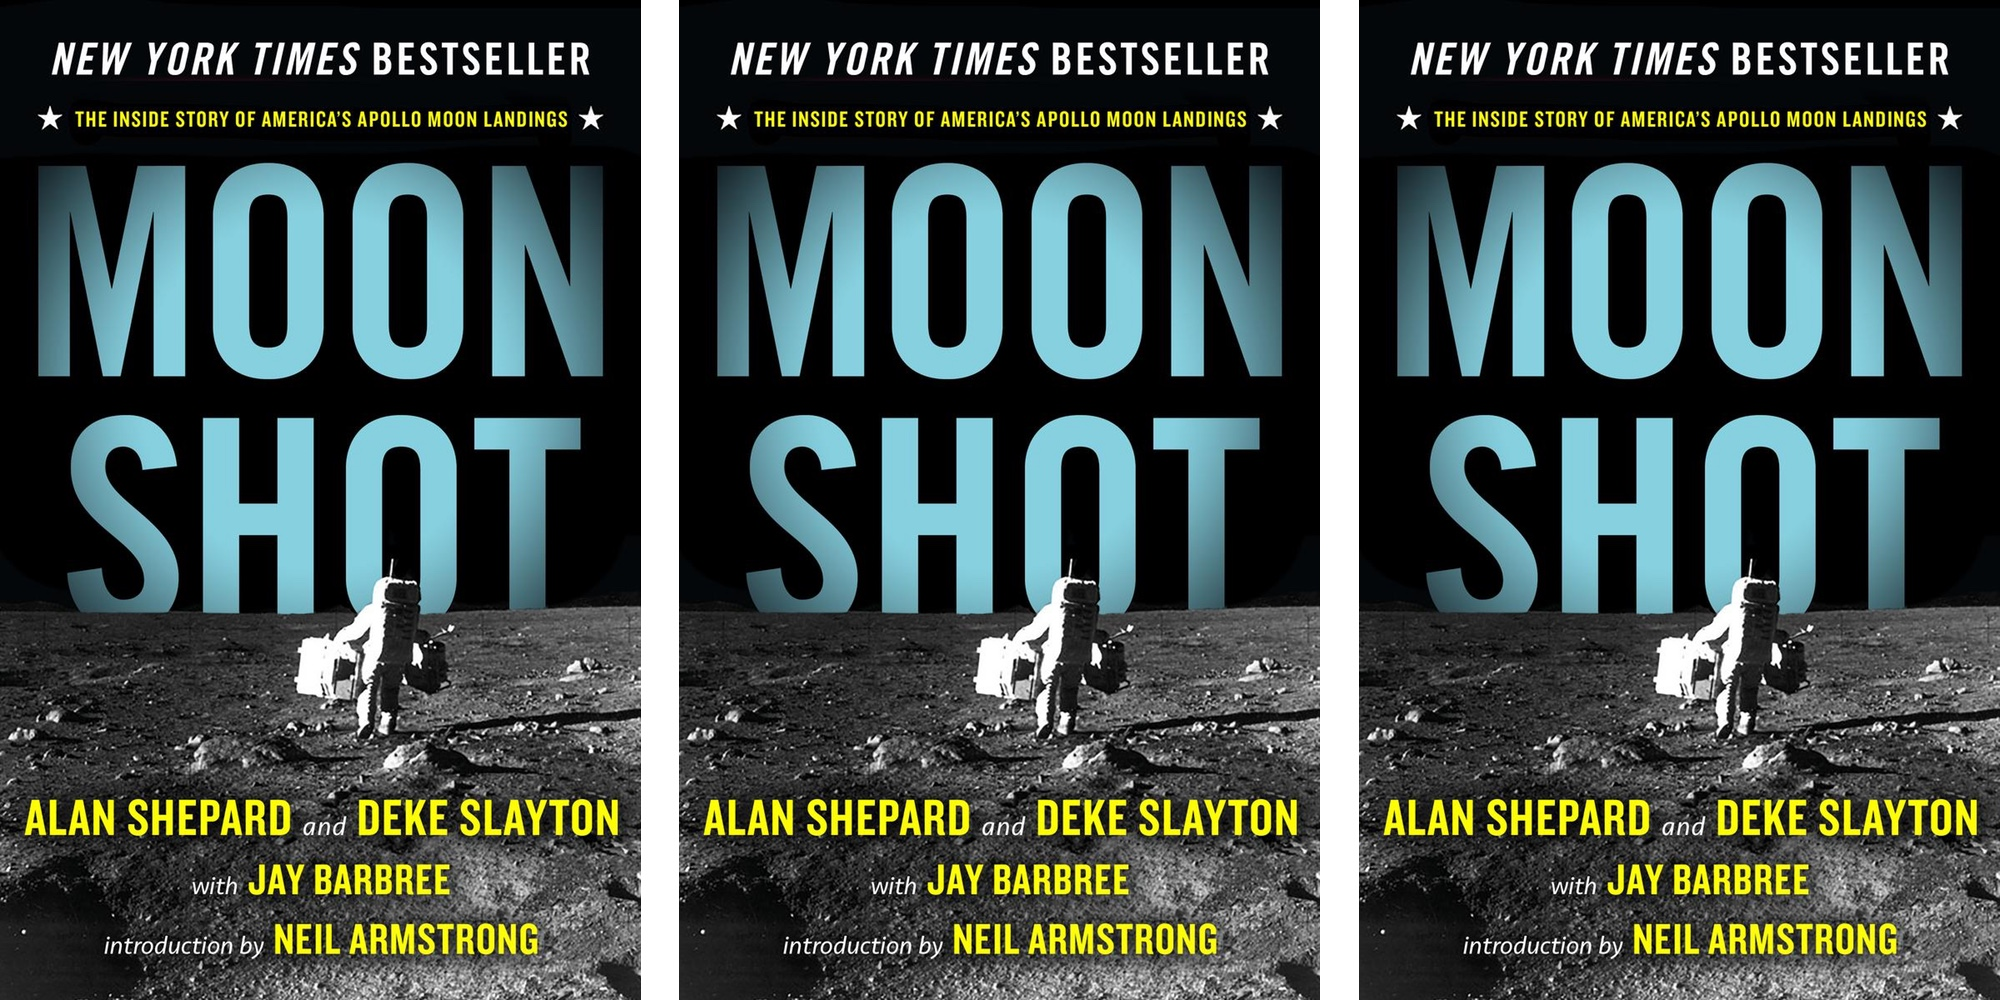 Download 'Moon Shot' as a Kindle eBook for only $0.55 (Orig. $18) - 9to5Toys